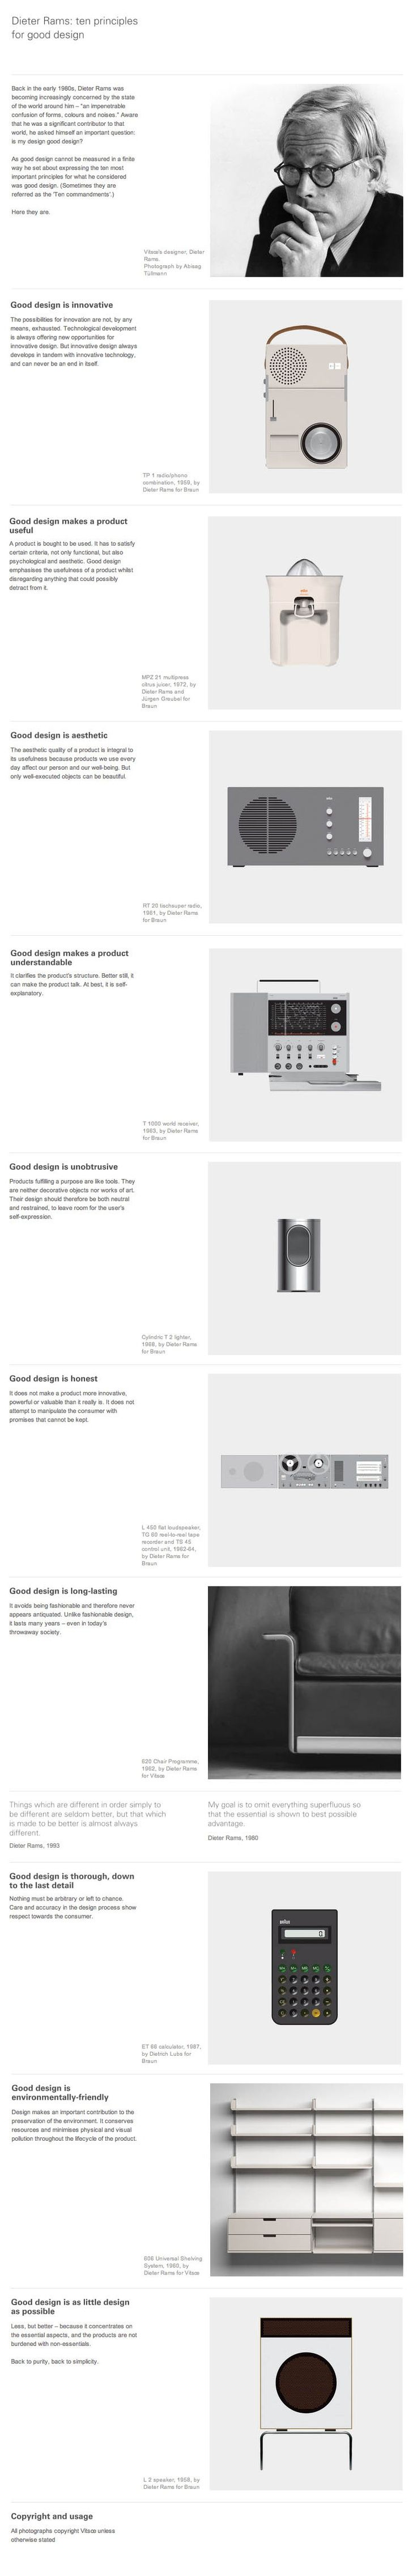 Infographic: 10 Principles for good design | Design made in Germany: Dieter rams |